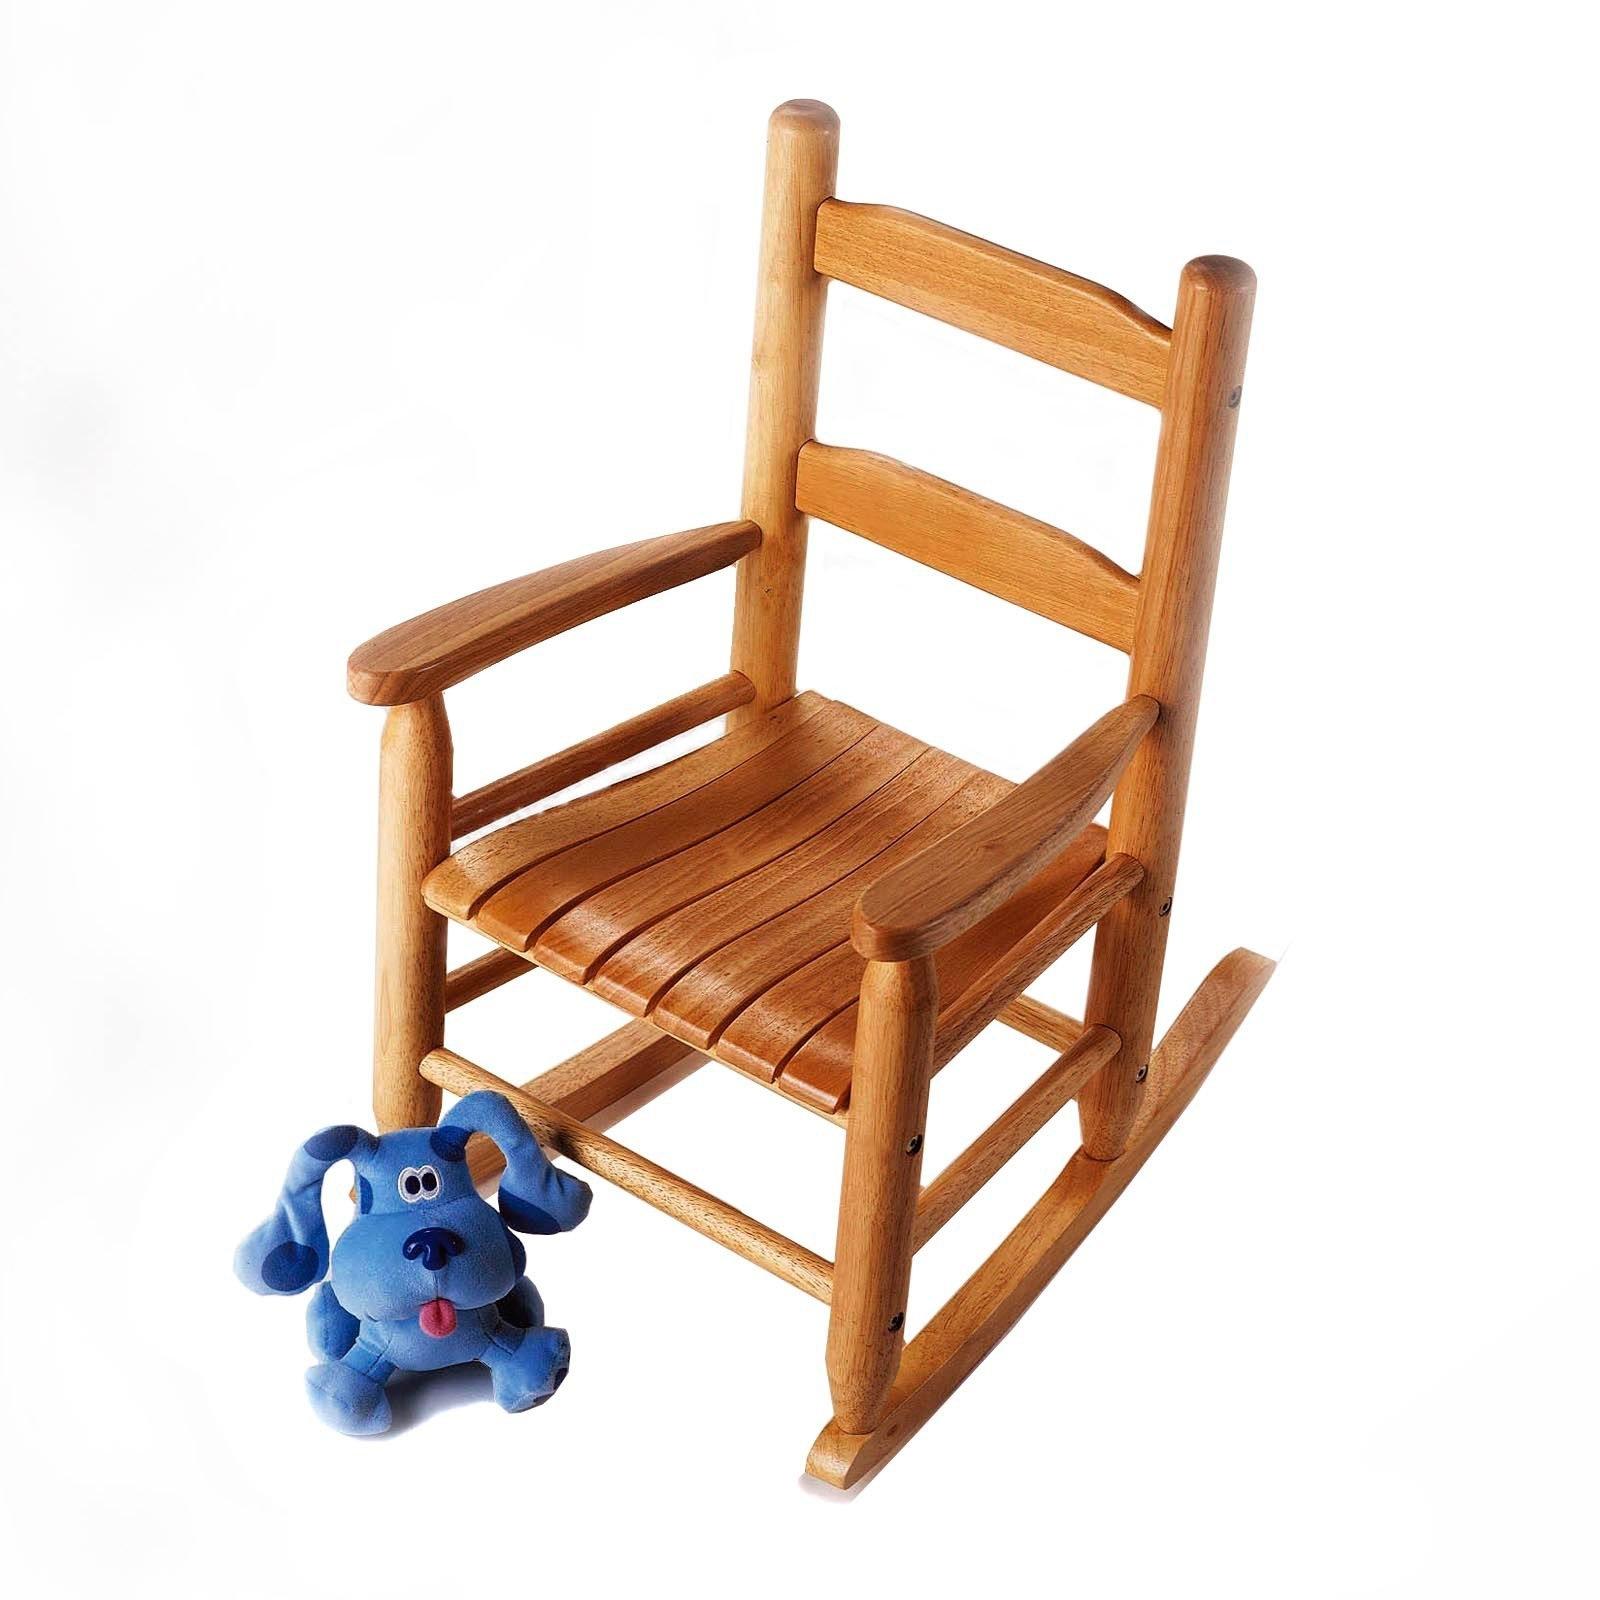 Rocking Chairs For Toddlers With Regard To Newest Elegant Toddler Rocking Chair Wood F96x On Most Luxury Interior (View 19 of 20)